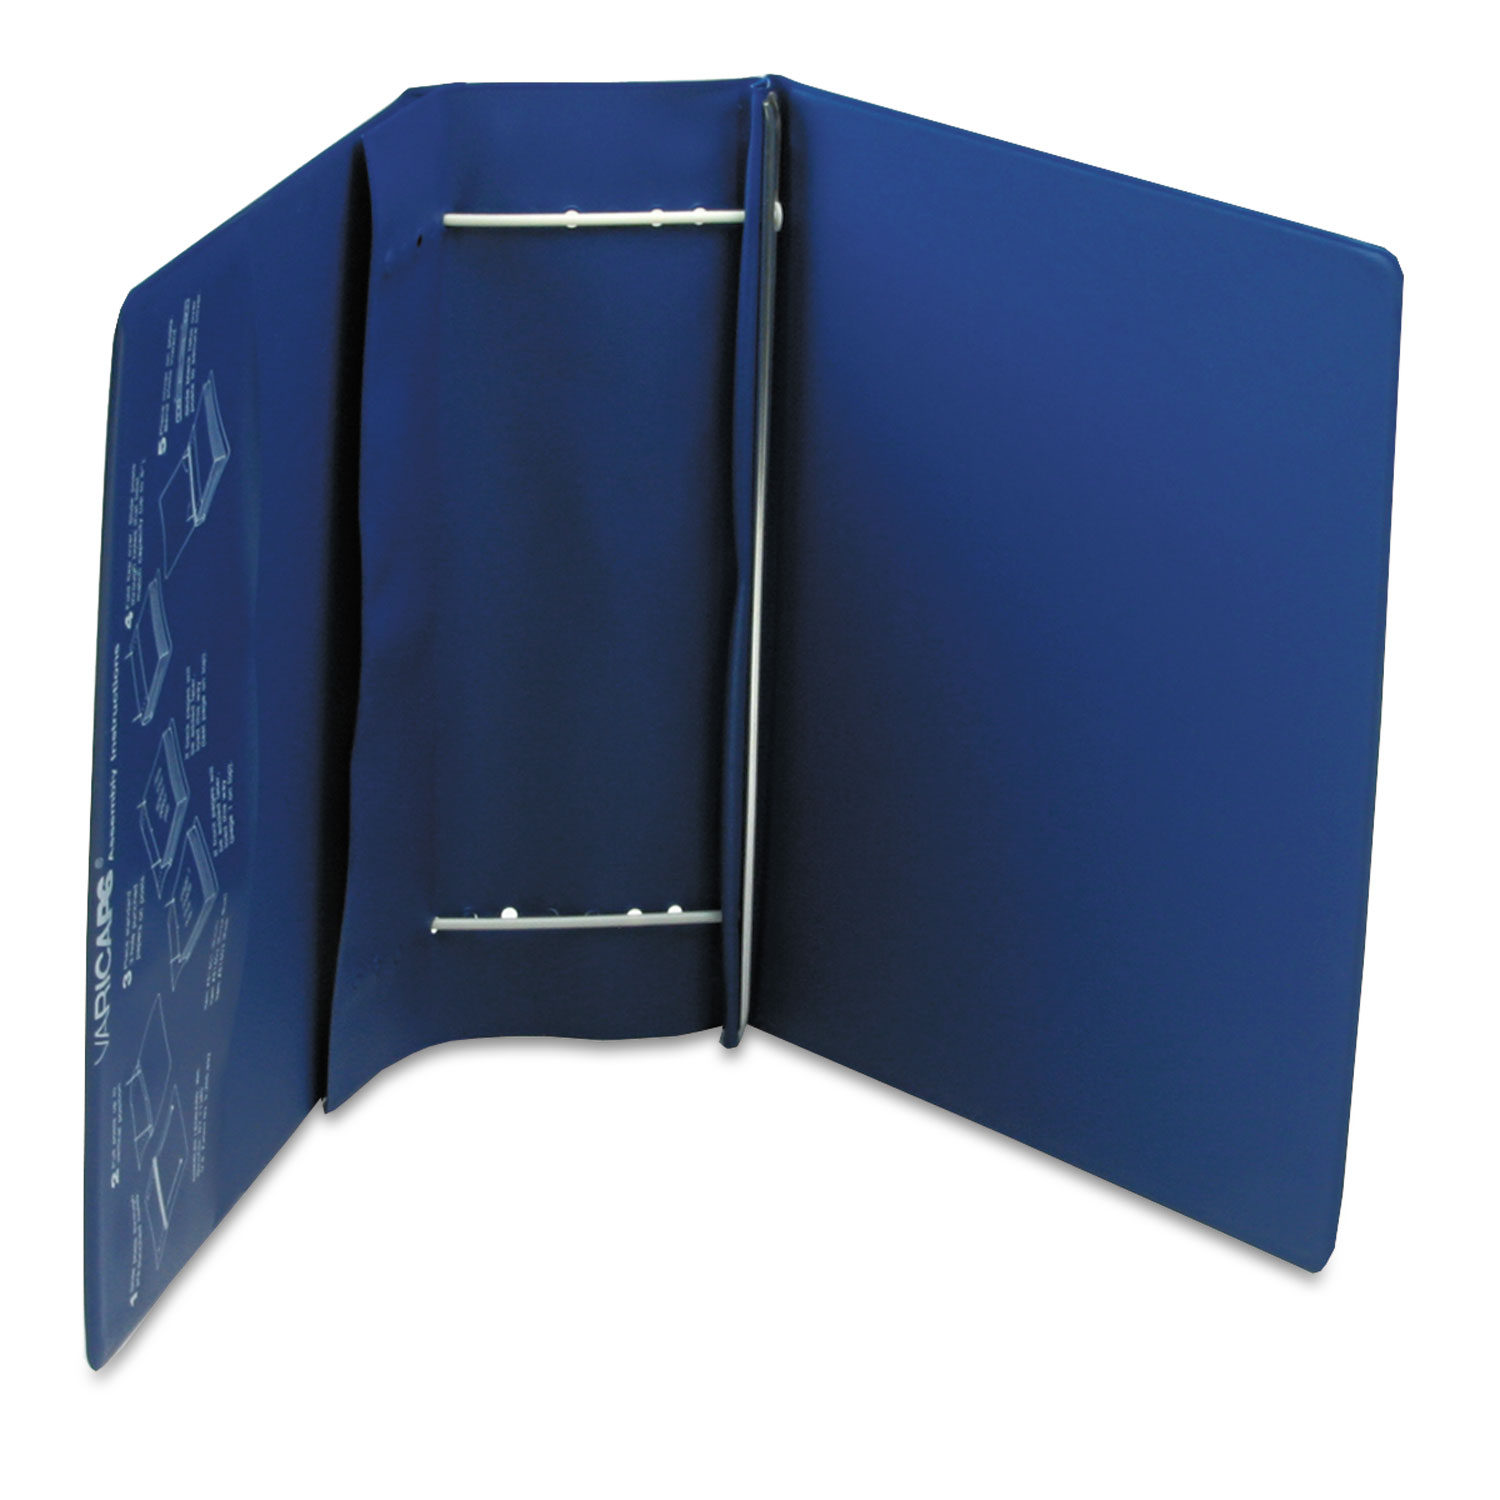 varicap6 expandable 1 to 6 post binder by charles leonard leo61602